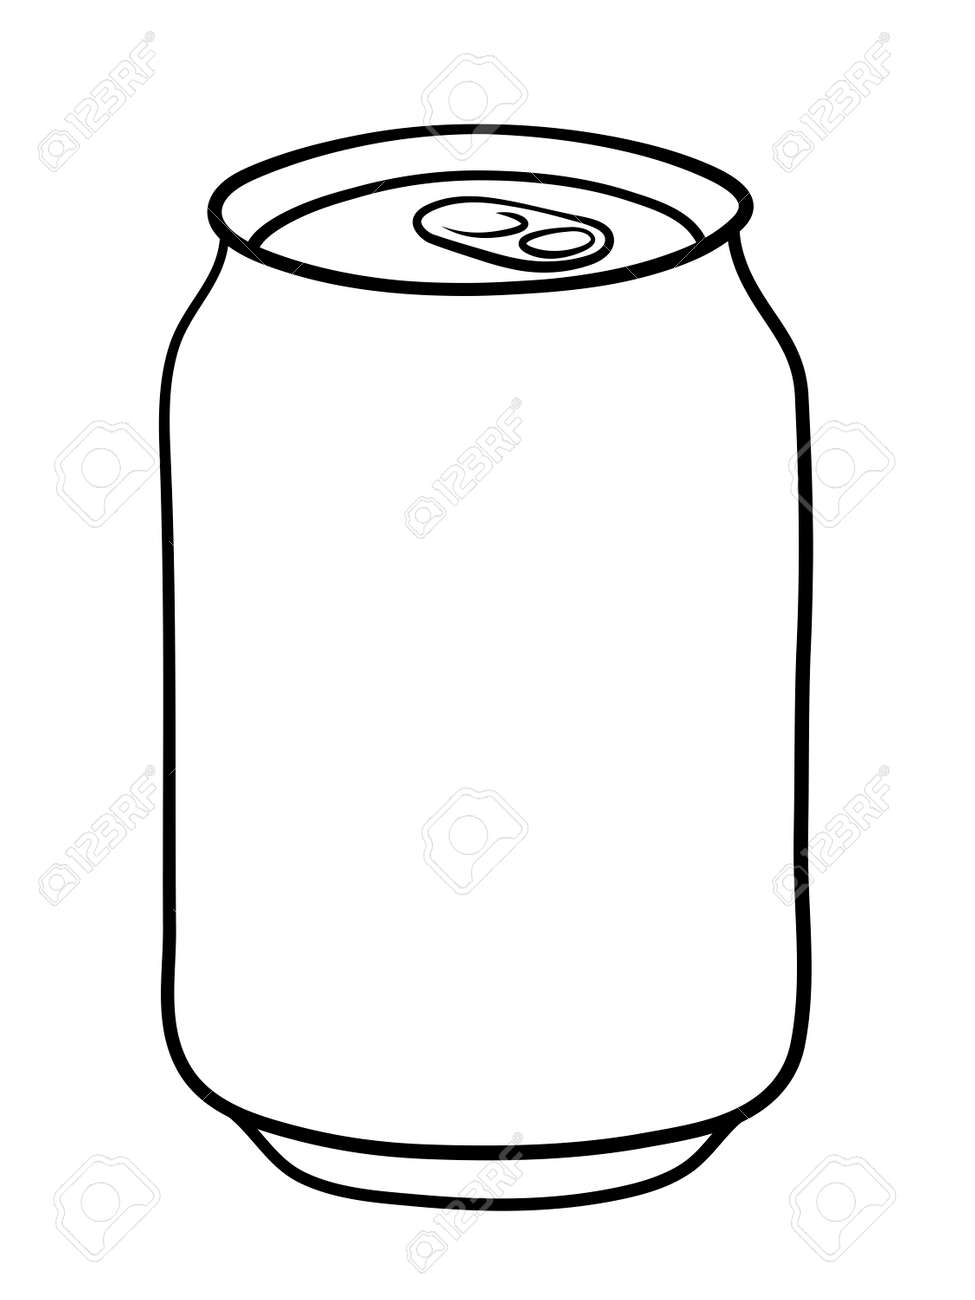 soda can doodle illustration in black and white royalty free rh 123rf com soda can clipart soda can pictures clip art